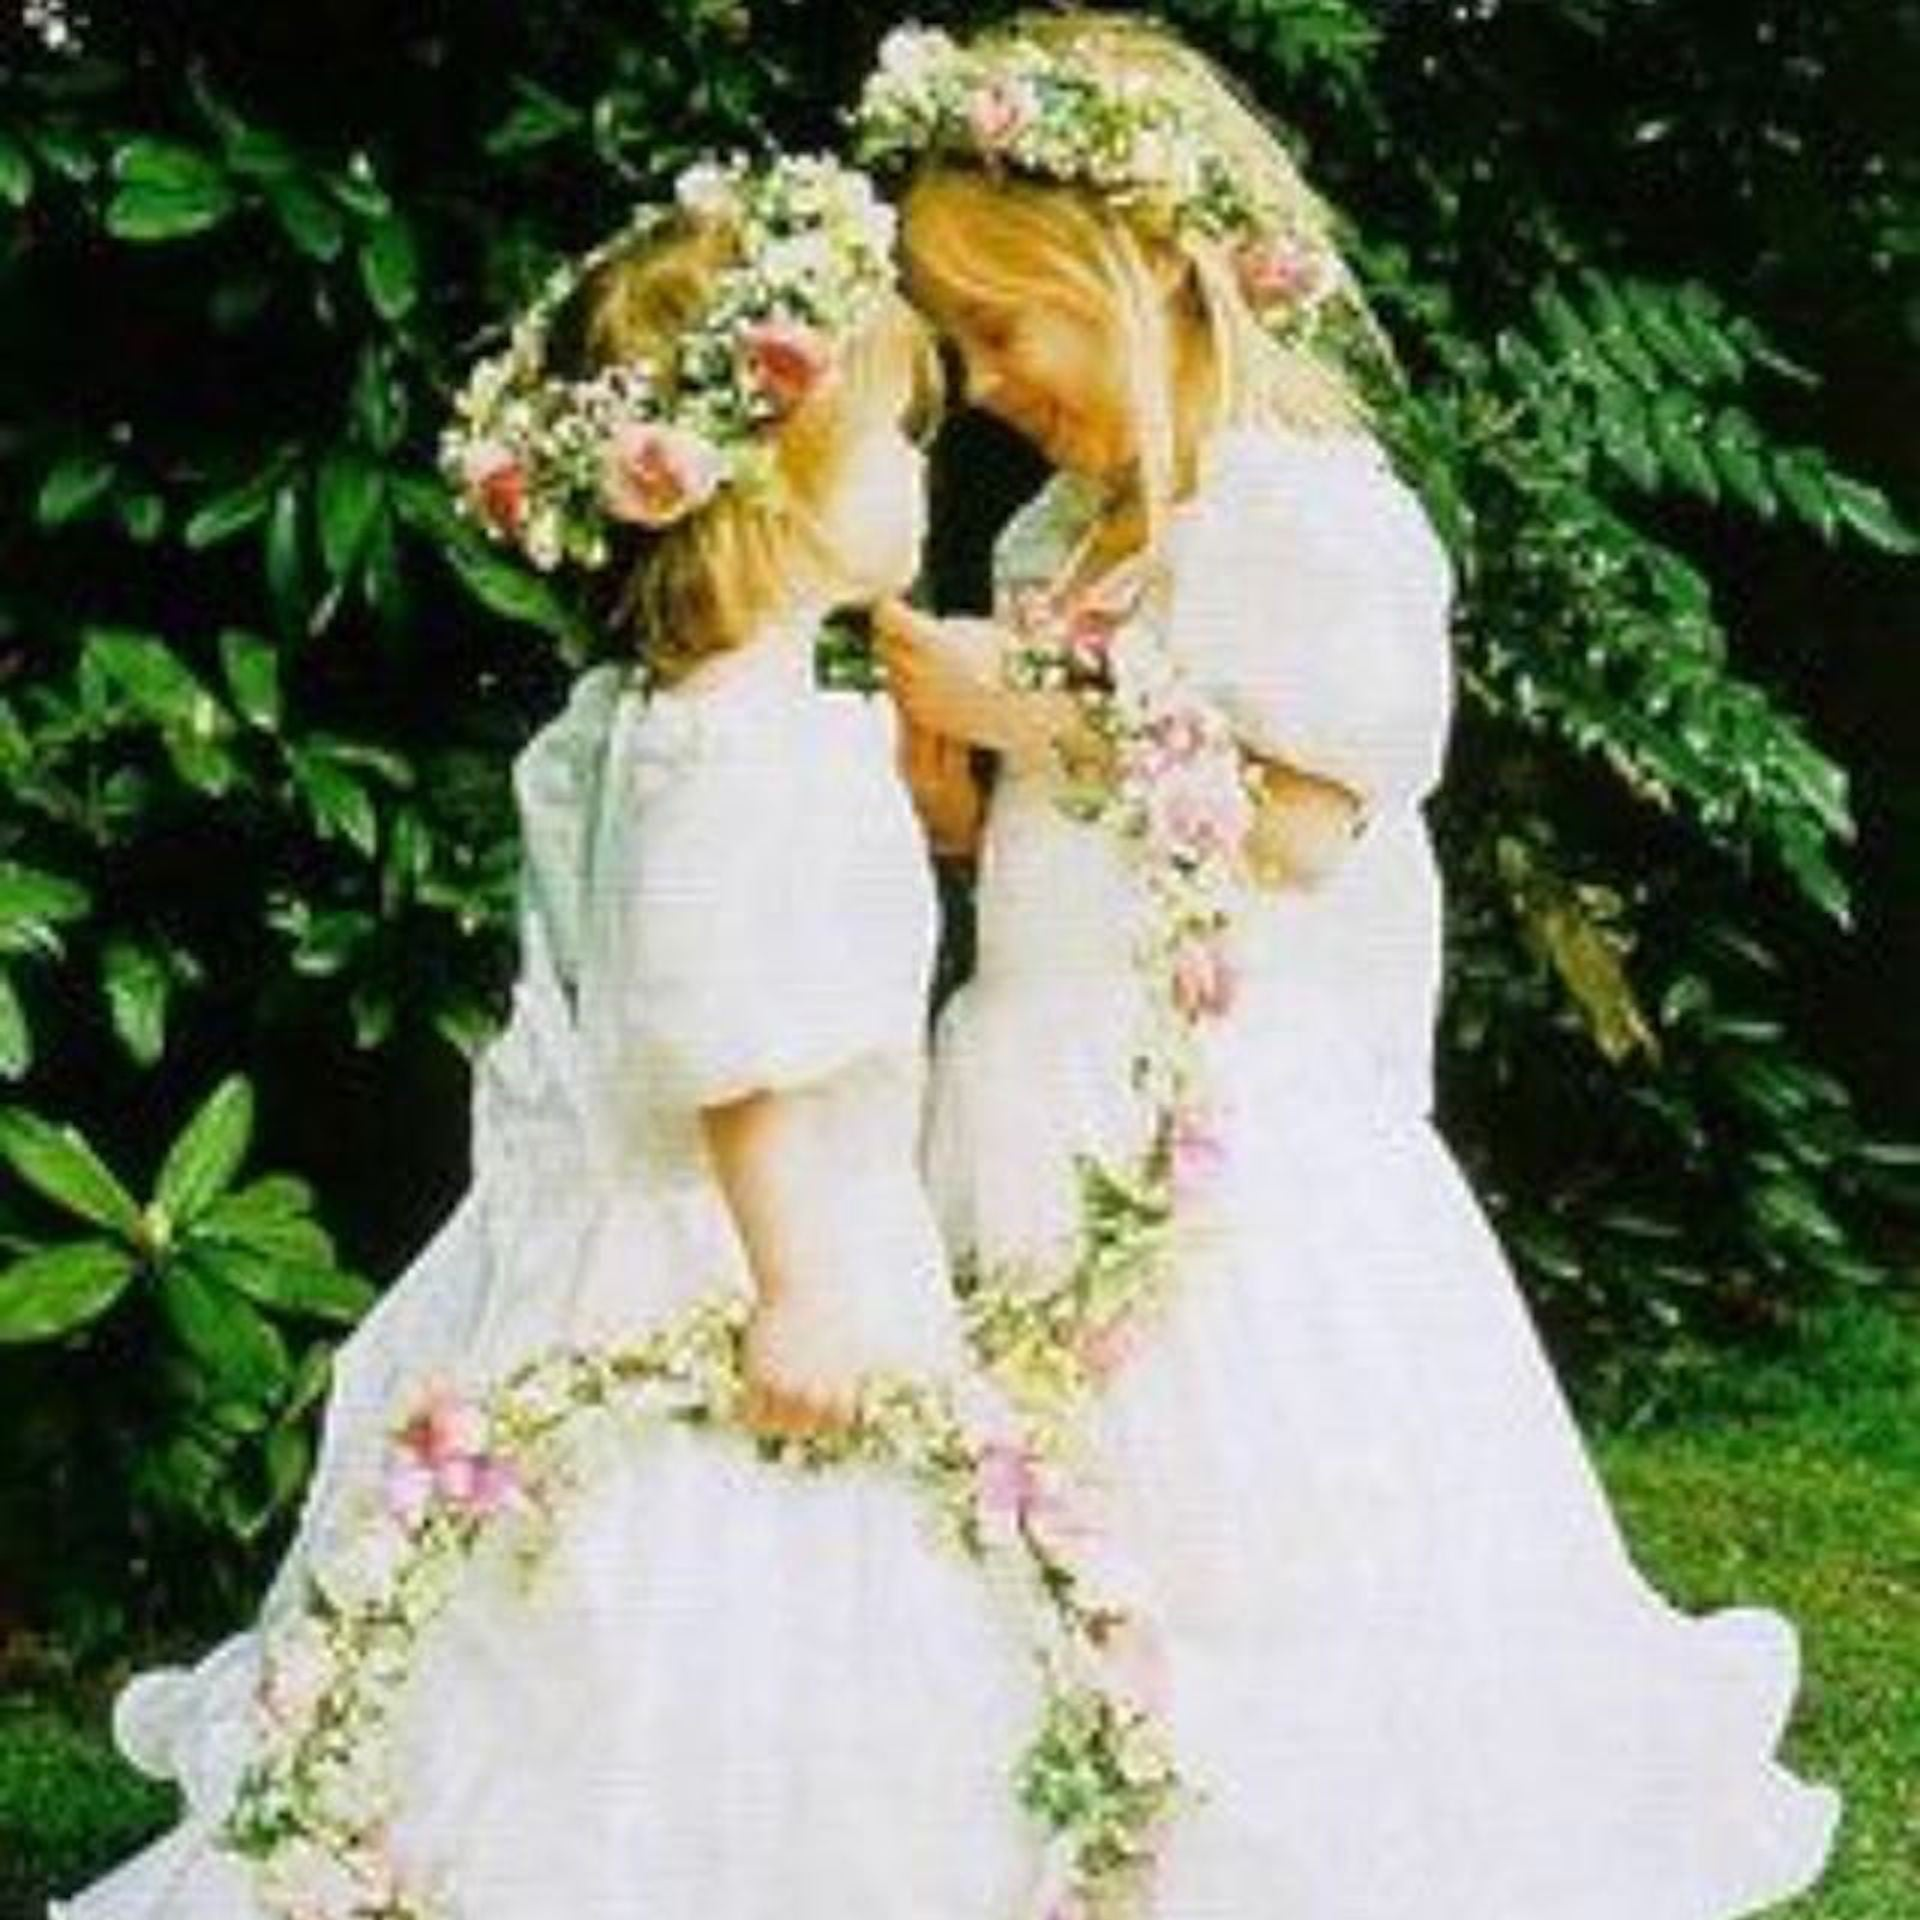 Princess Eugenie And Beatrice Wedding Throwback Photo Popsugar